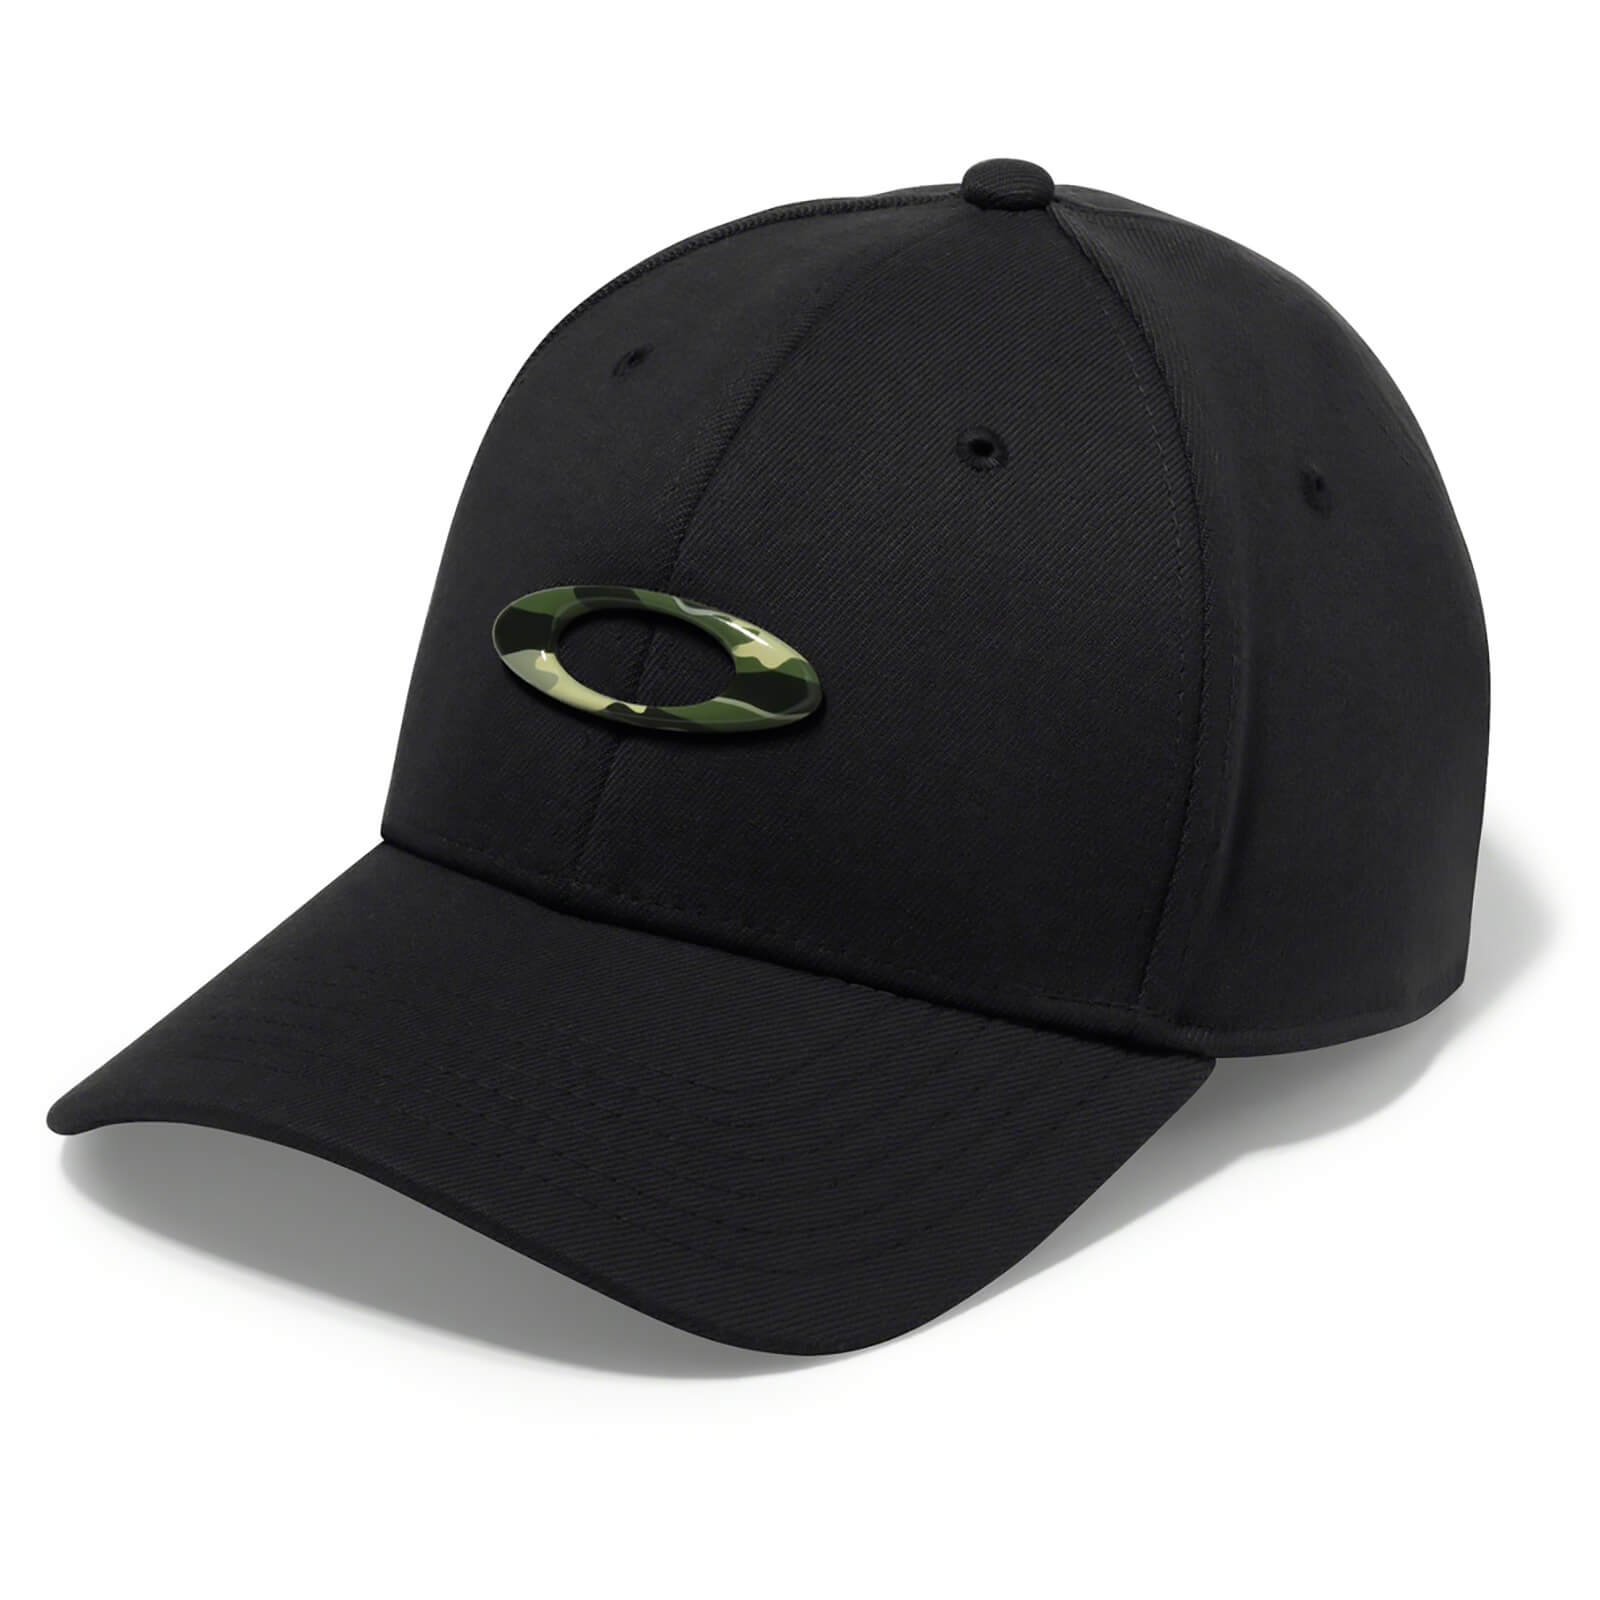 Oakley Tincan Cap - Black/Green | Headwear